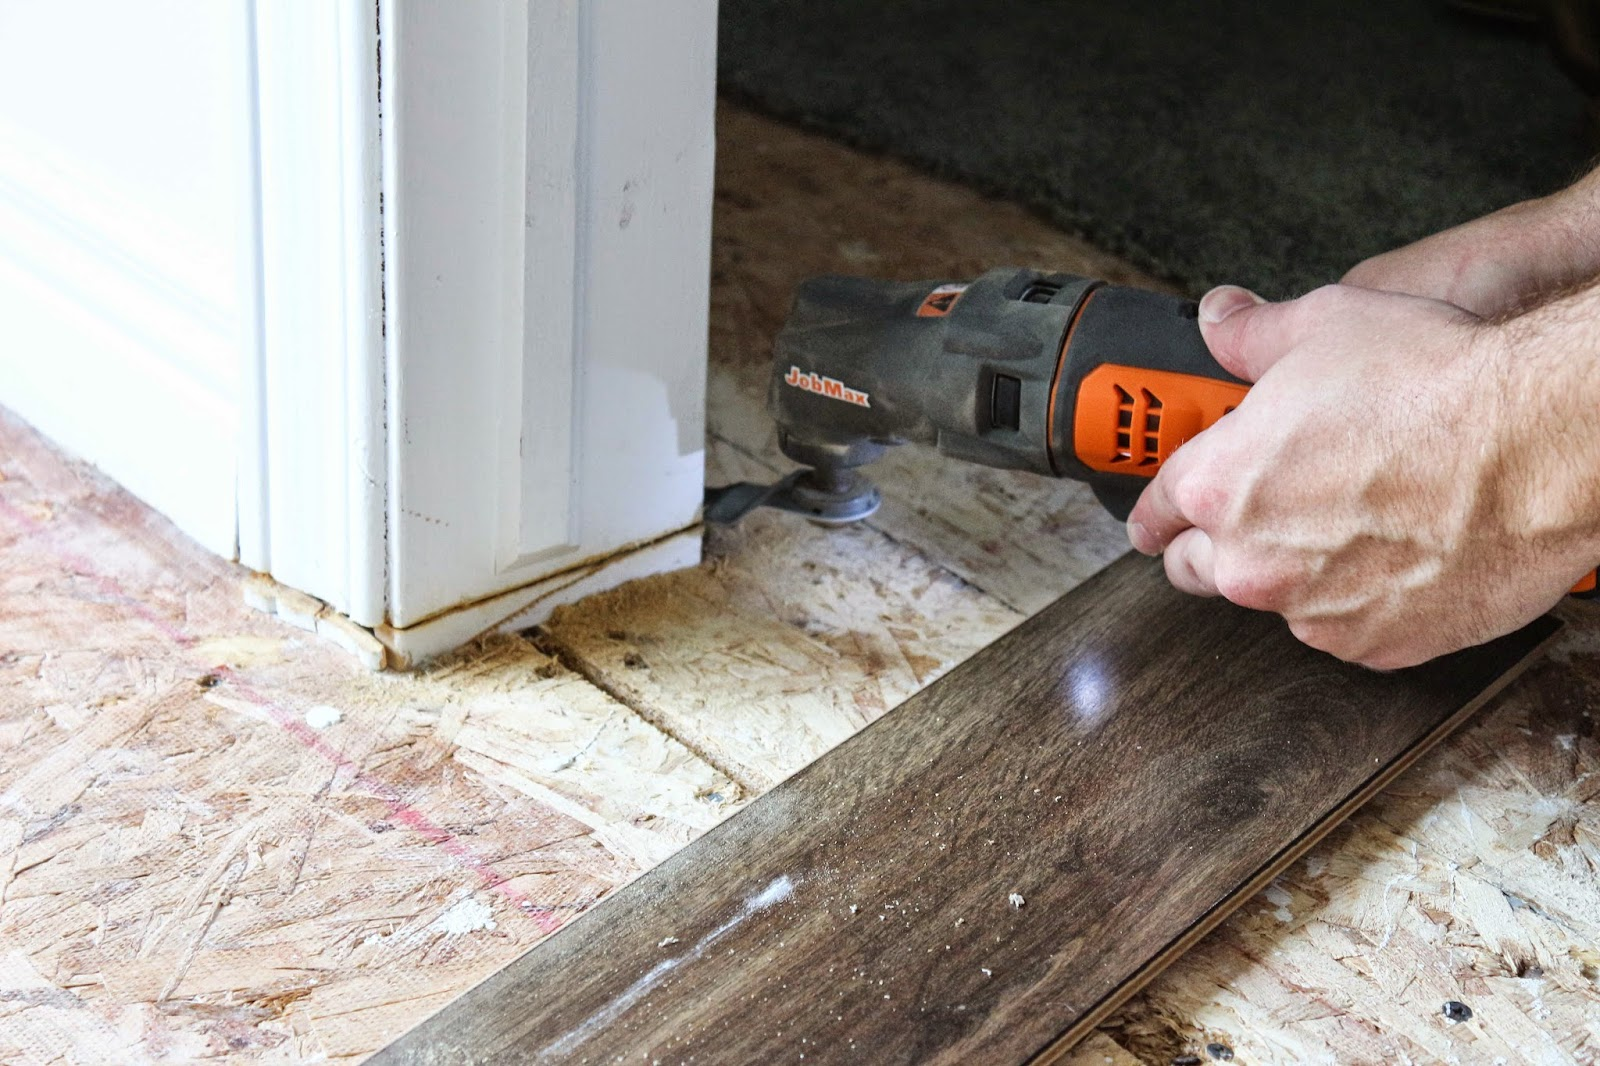 Using a multi-tool to cut door jambs